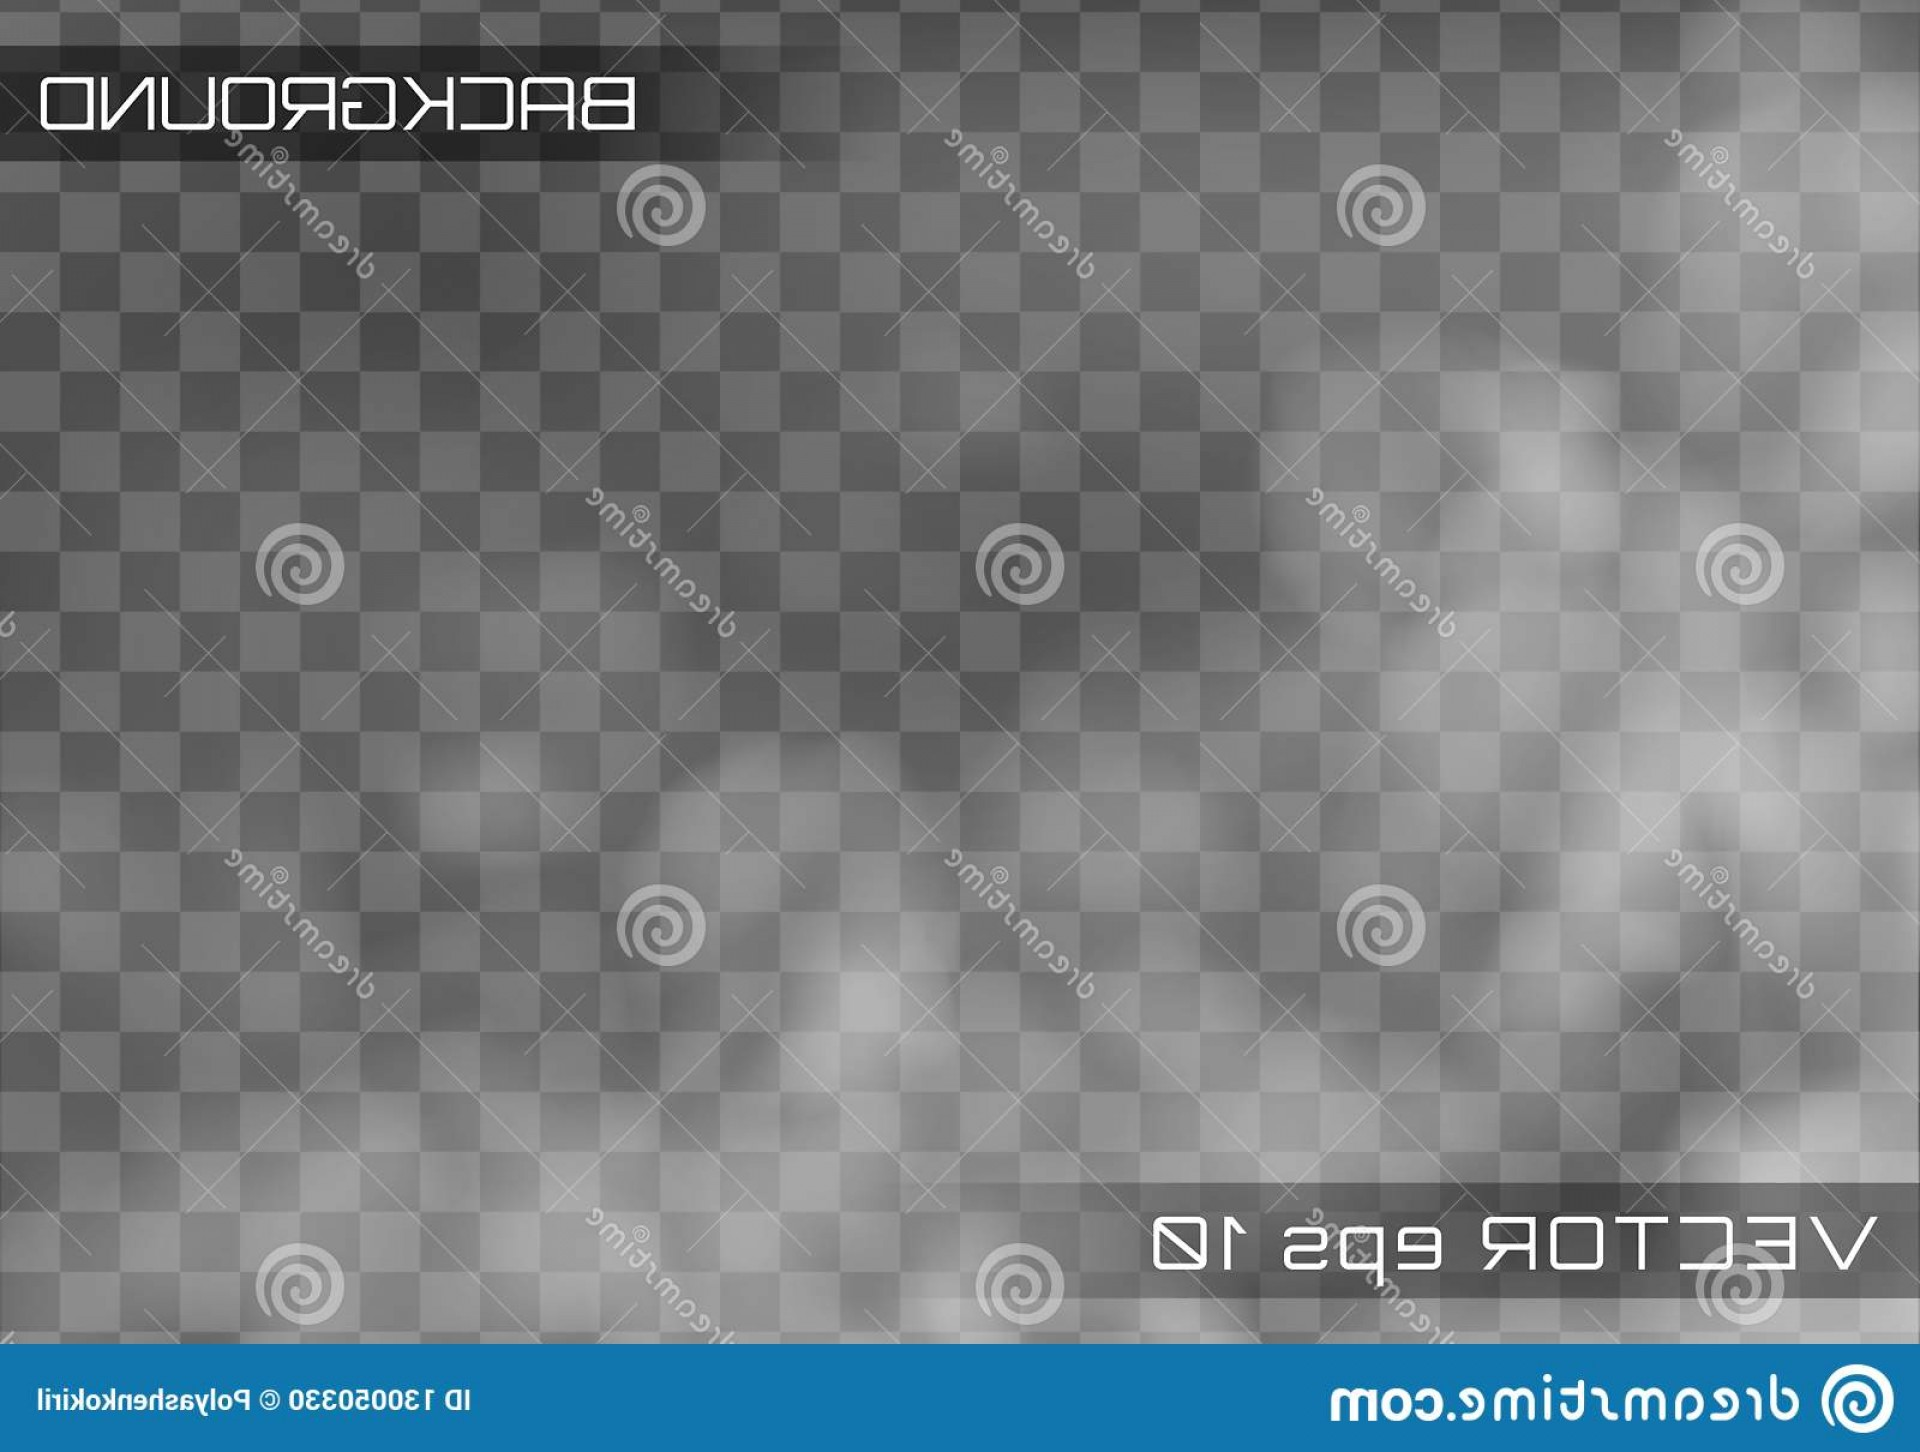 Billow Smoke Vector: Fog Smoke Transparent Special Effect Vector Realistic Background White Cloudiness Mist Smog Image